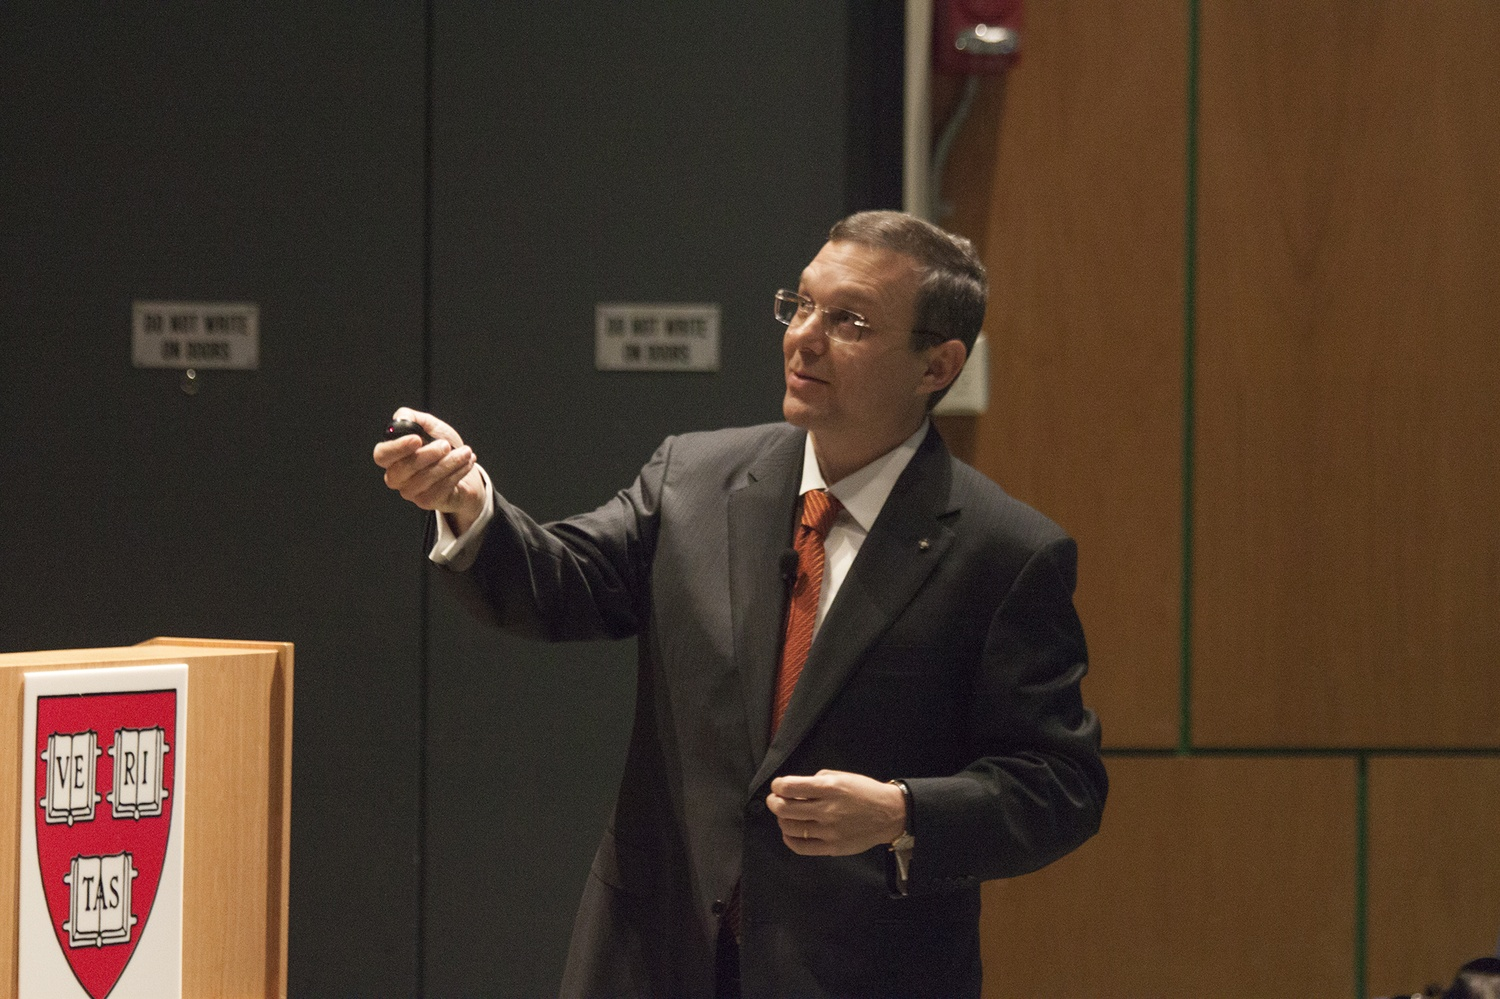 Dr. Abraham A. Loeb, the chair of the Harvard Astronomy department, describes the possibility of discovering extraterrestrial life on Tuesday evening in the Science Center.